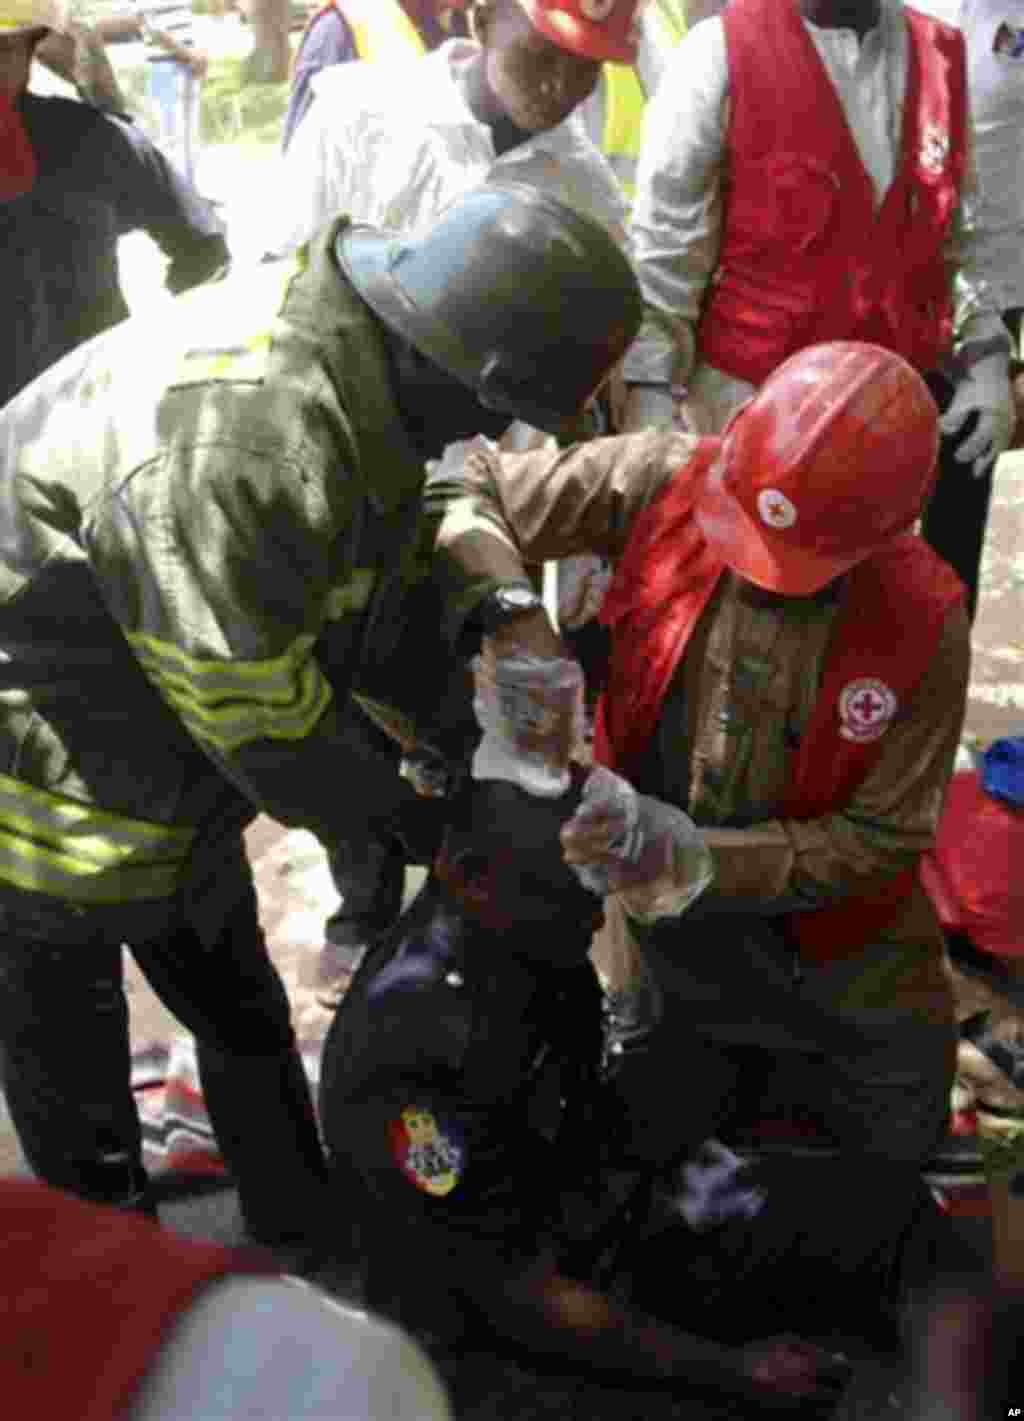 Rescue workers tend to an injured man at the site of the bombed office of ThisDay, an influential daily newspaper in Abuja, Nigeria, Thursday, April. 26, 2012.